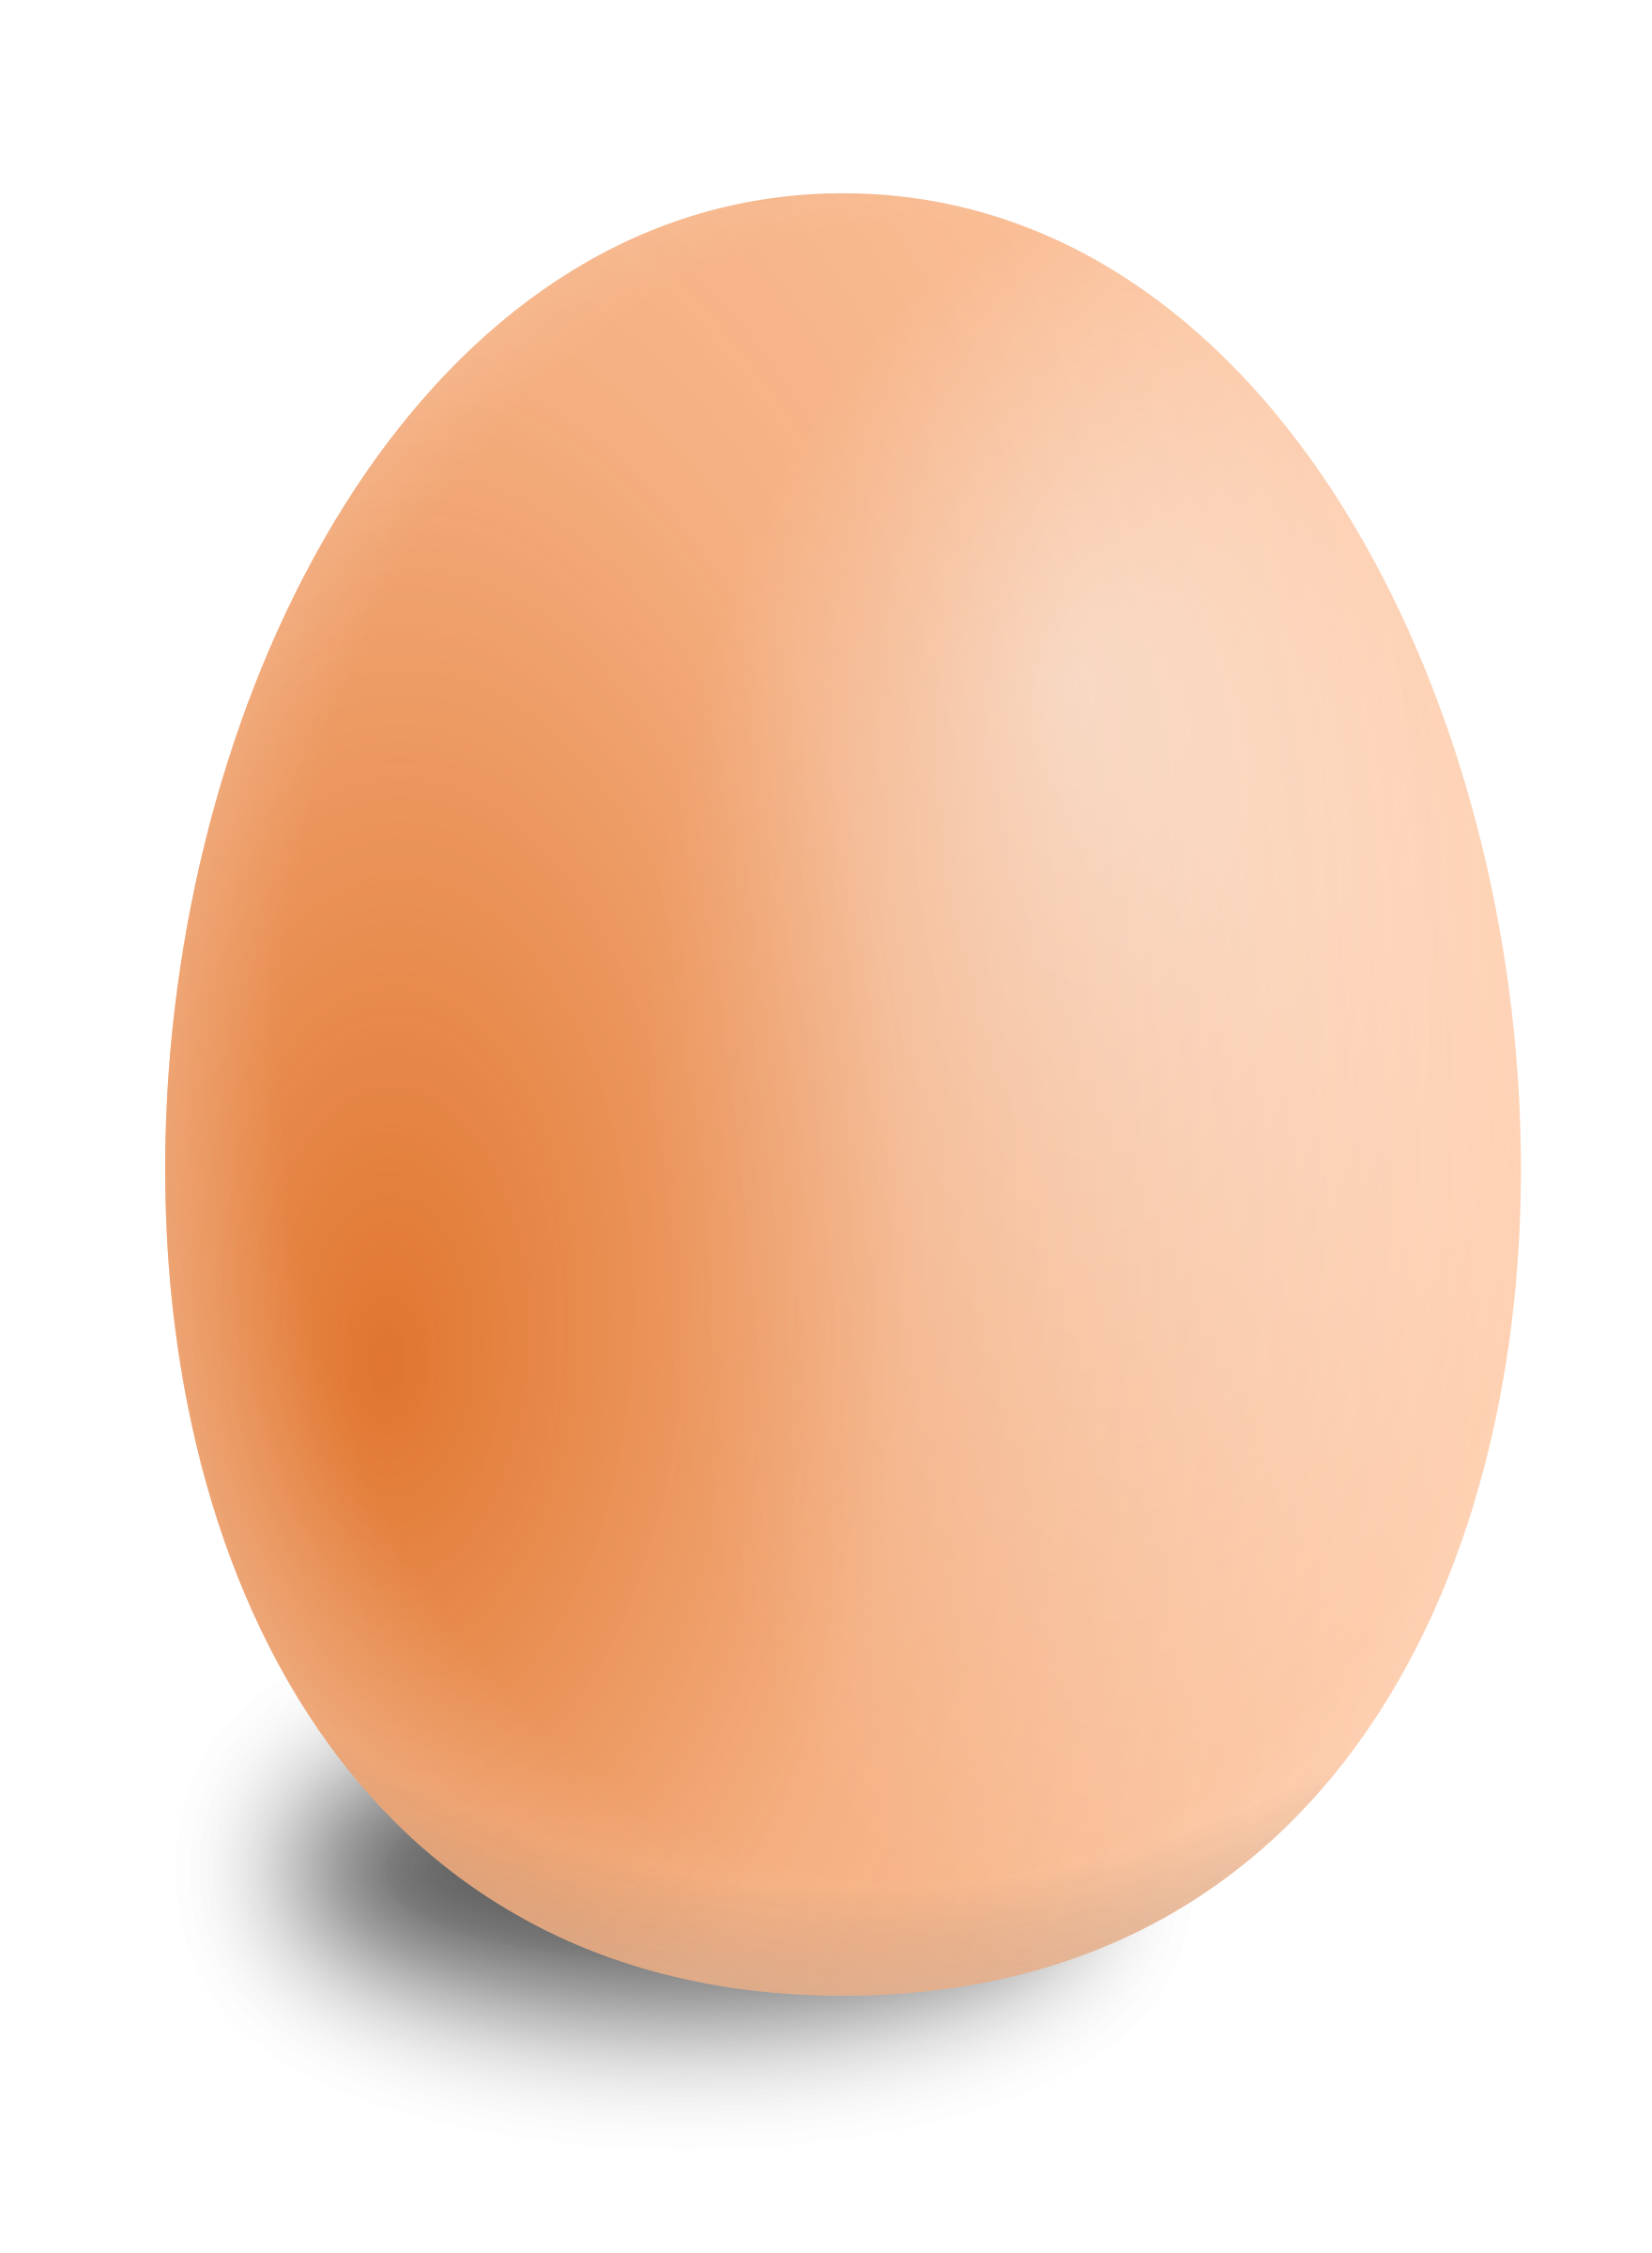 Broken Egg PNG HD - 124781